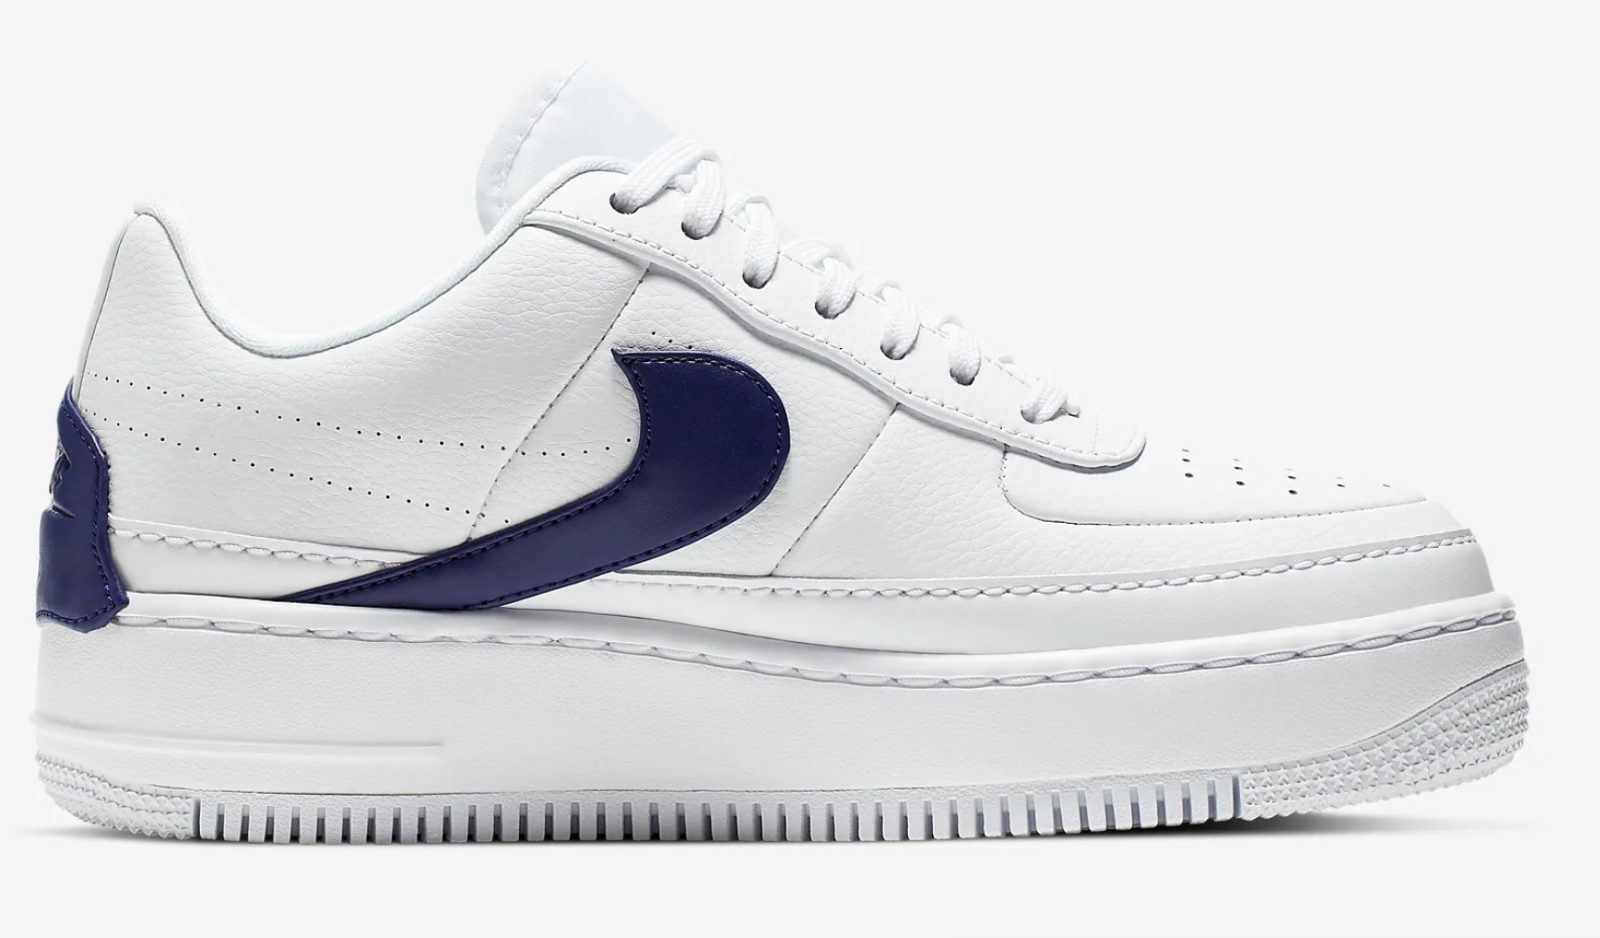 new product 1616d 5bbd4 The Nike Air Force 1 Jester XX Regency Purple is available right now on Nike,  so head to the links on this page to shop the silhouette right now!